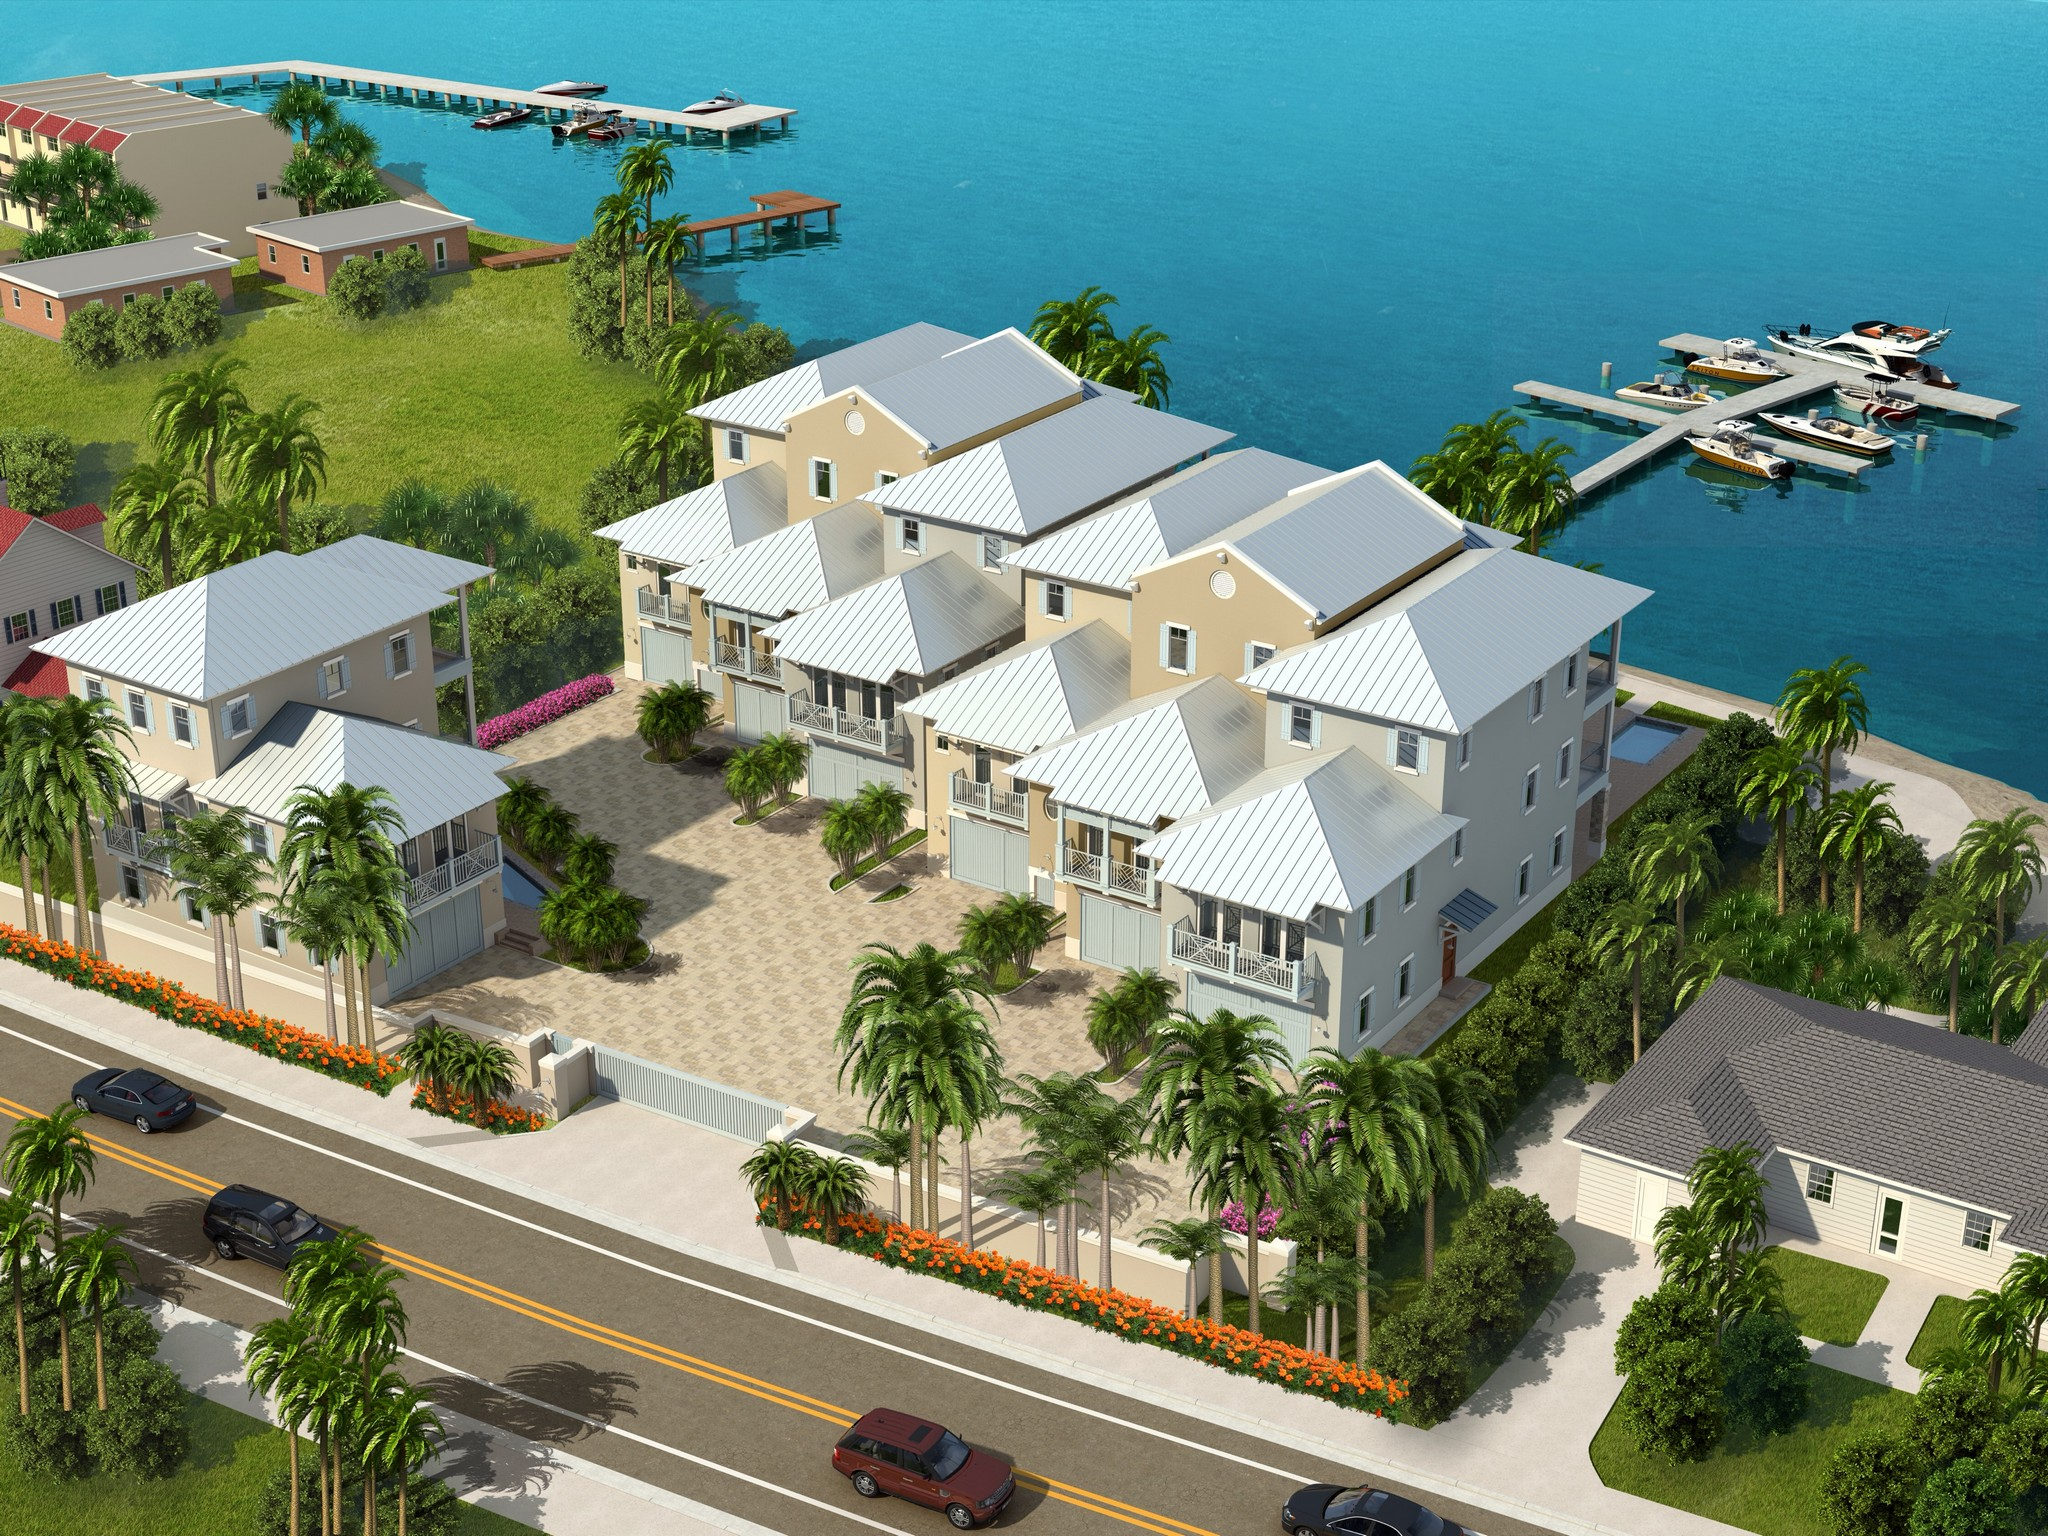 Moradia em banda para Venda às Riverfront Ultra-luxury townhome 1502 Seaway Drive #4 Fort Pierce, Florida 34949 Estados Unidos